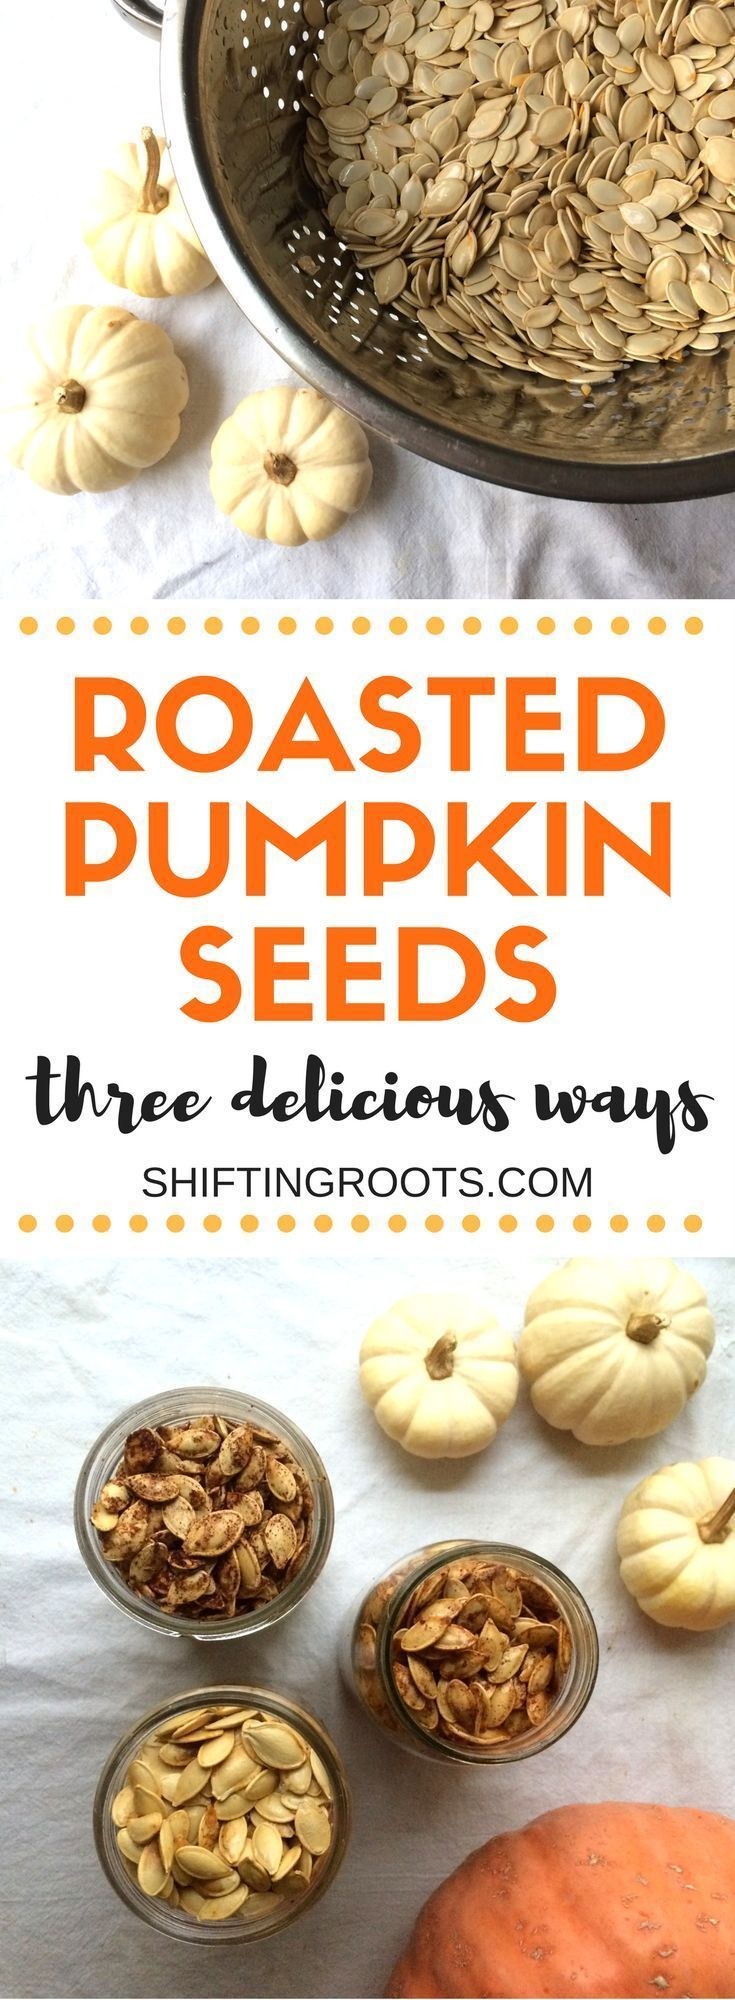 Making pumpkin seeds is easier than you think! Delicious, nutritious, and perfect for your next snack. Roast them or bake them and sprinkle with salt, sugar, cinnamon and a variety of other spices. #pumpkin #pumpkin seeds #healthysnacks #pumpkinrecipes via @shifting_roots